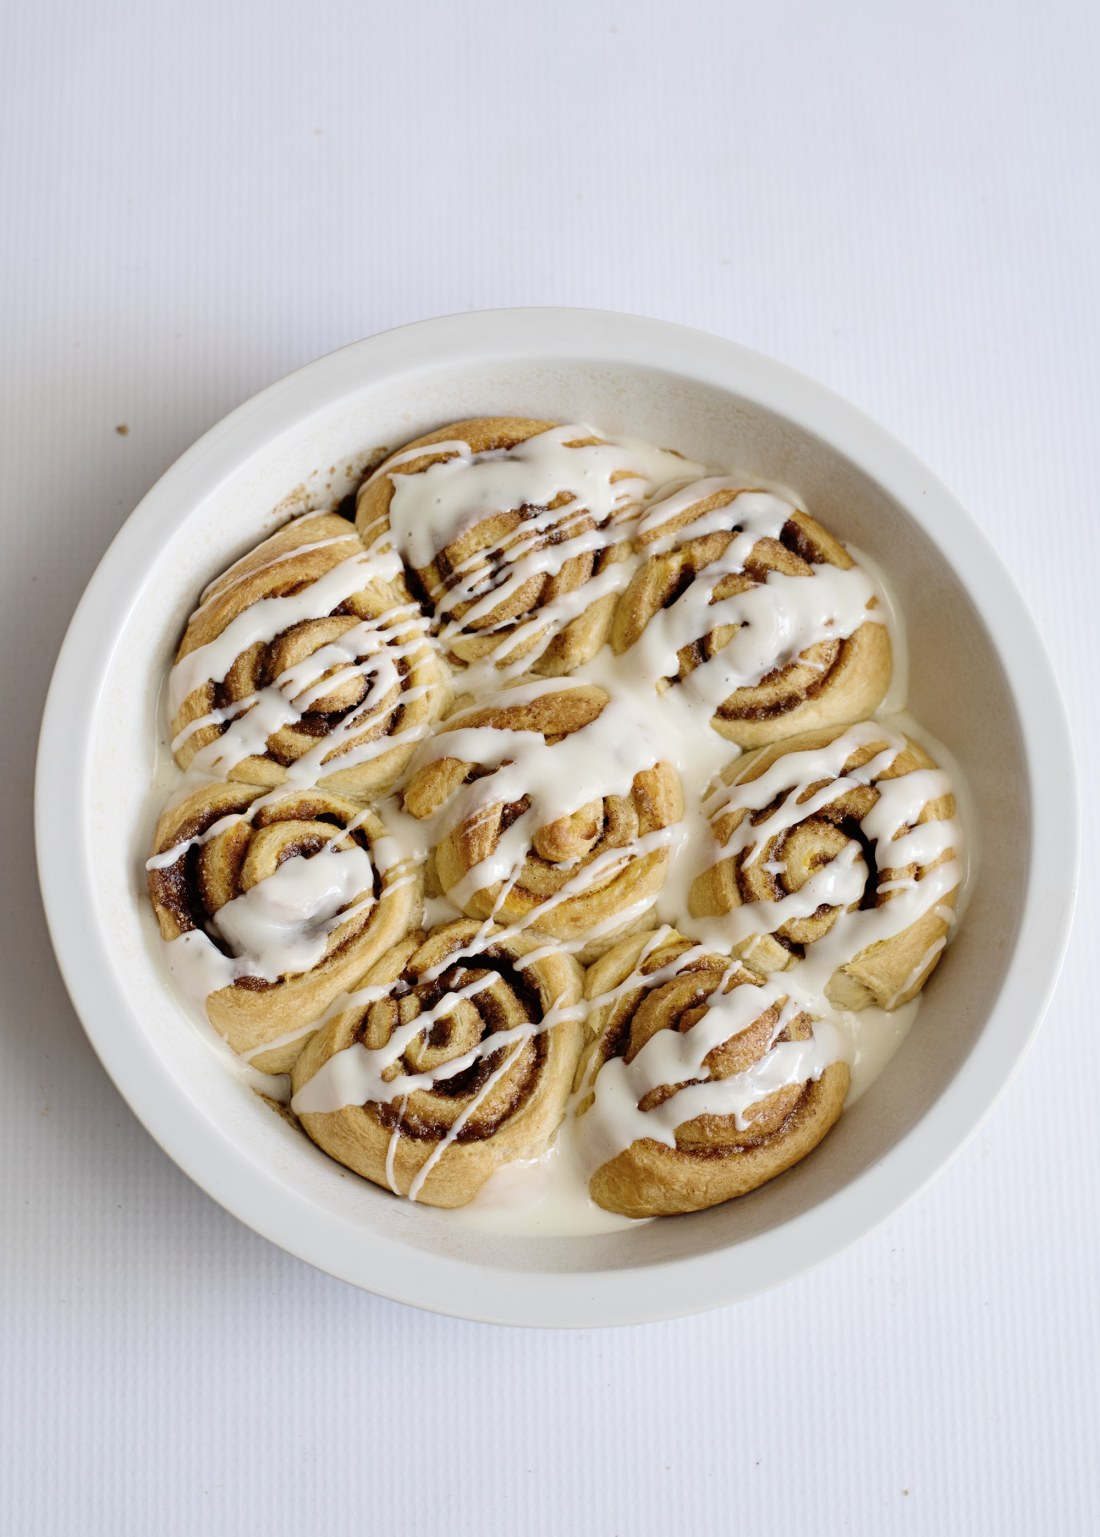 Pumpkin Spice Cinnamon Rolls Baked Icing Drizzle Fill your home with the delicious smell of these easy to make Pumpkin Spice Cinnamon Rolls.